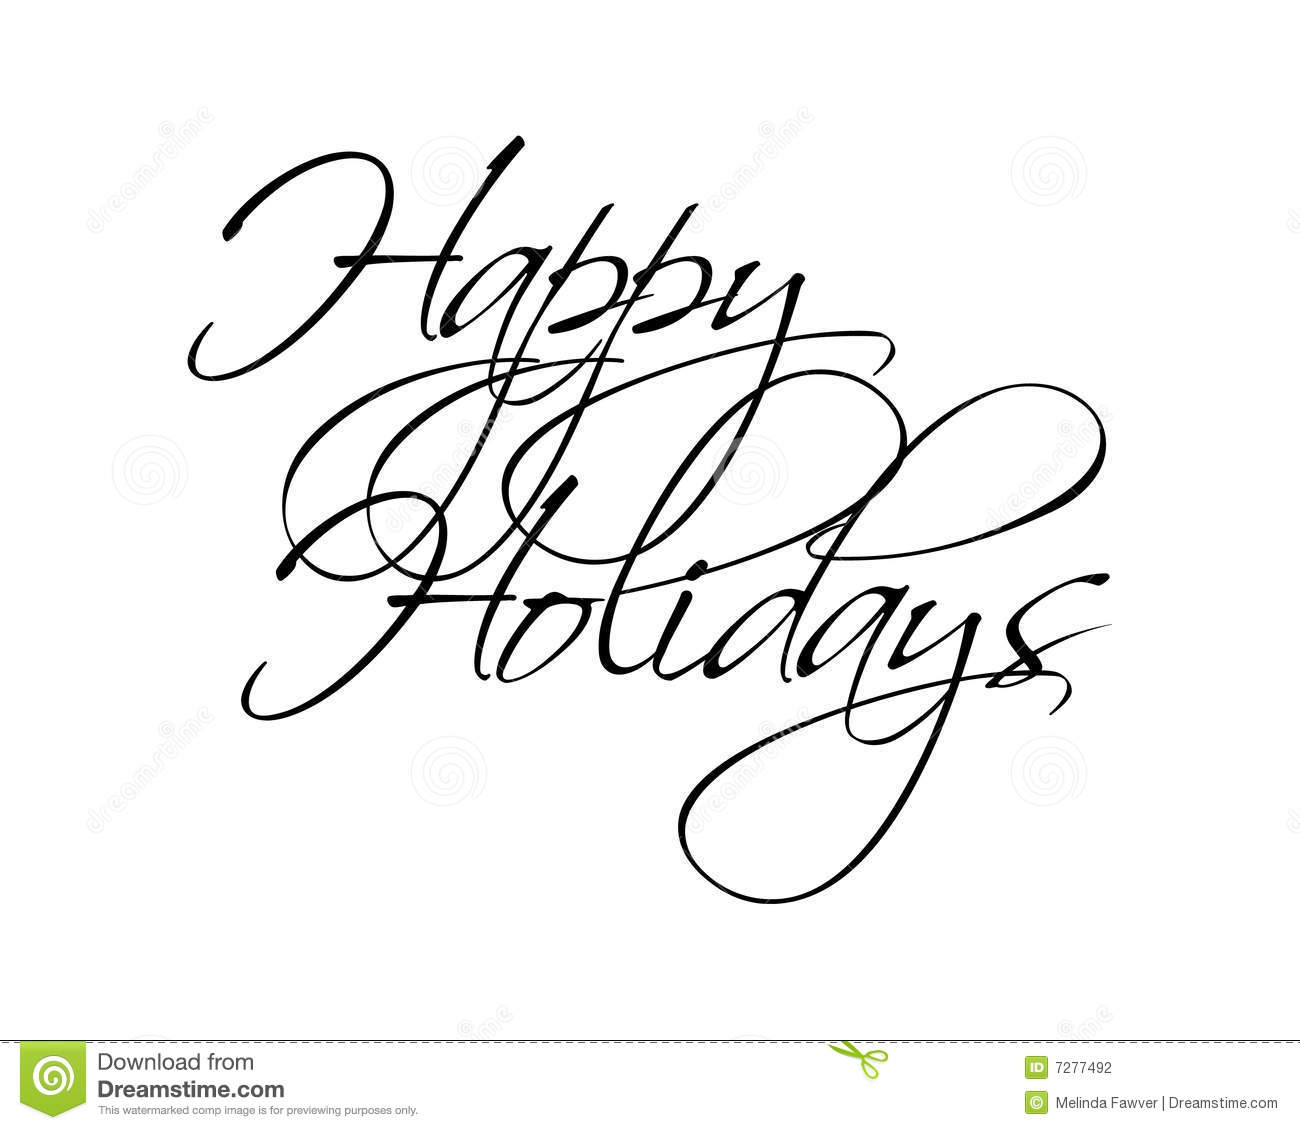 Happy Holidays Black Text Picture